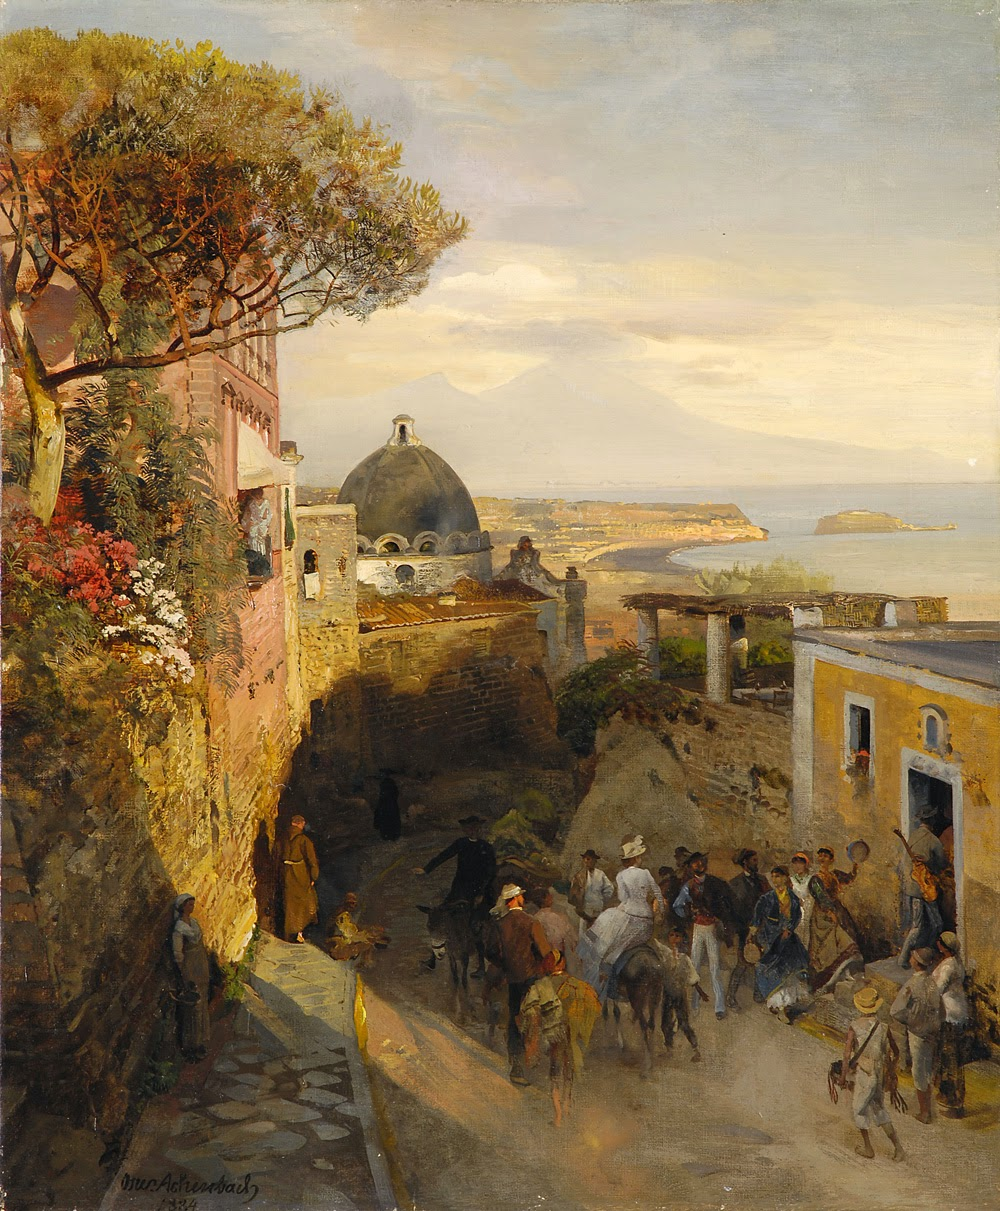 Oswald Achenbach - Street Scence in Naples, 1884